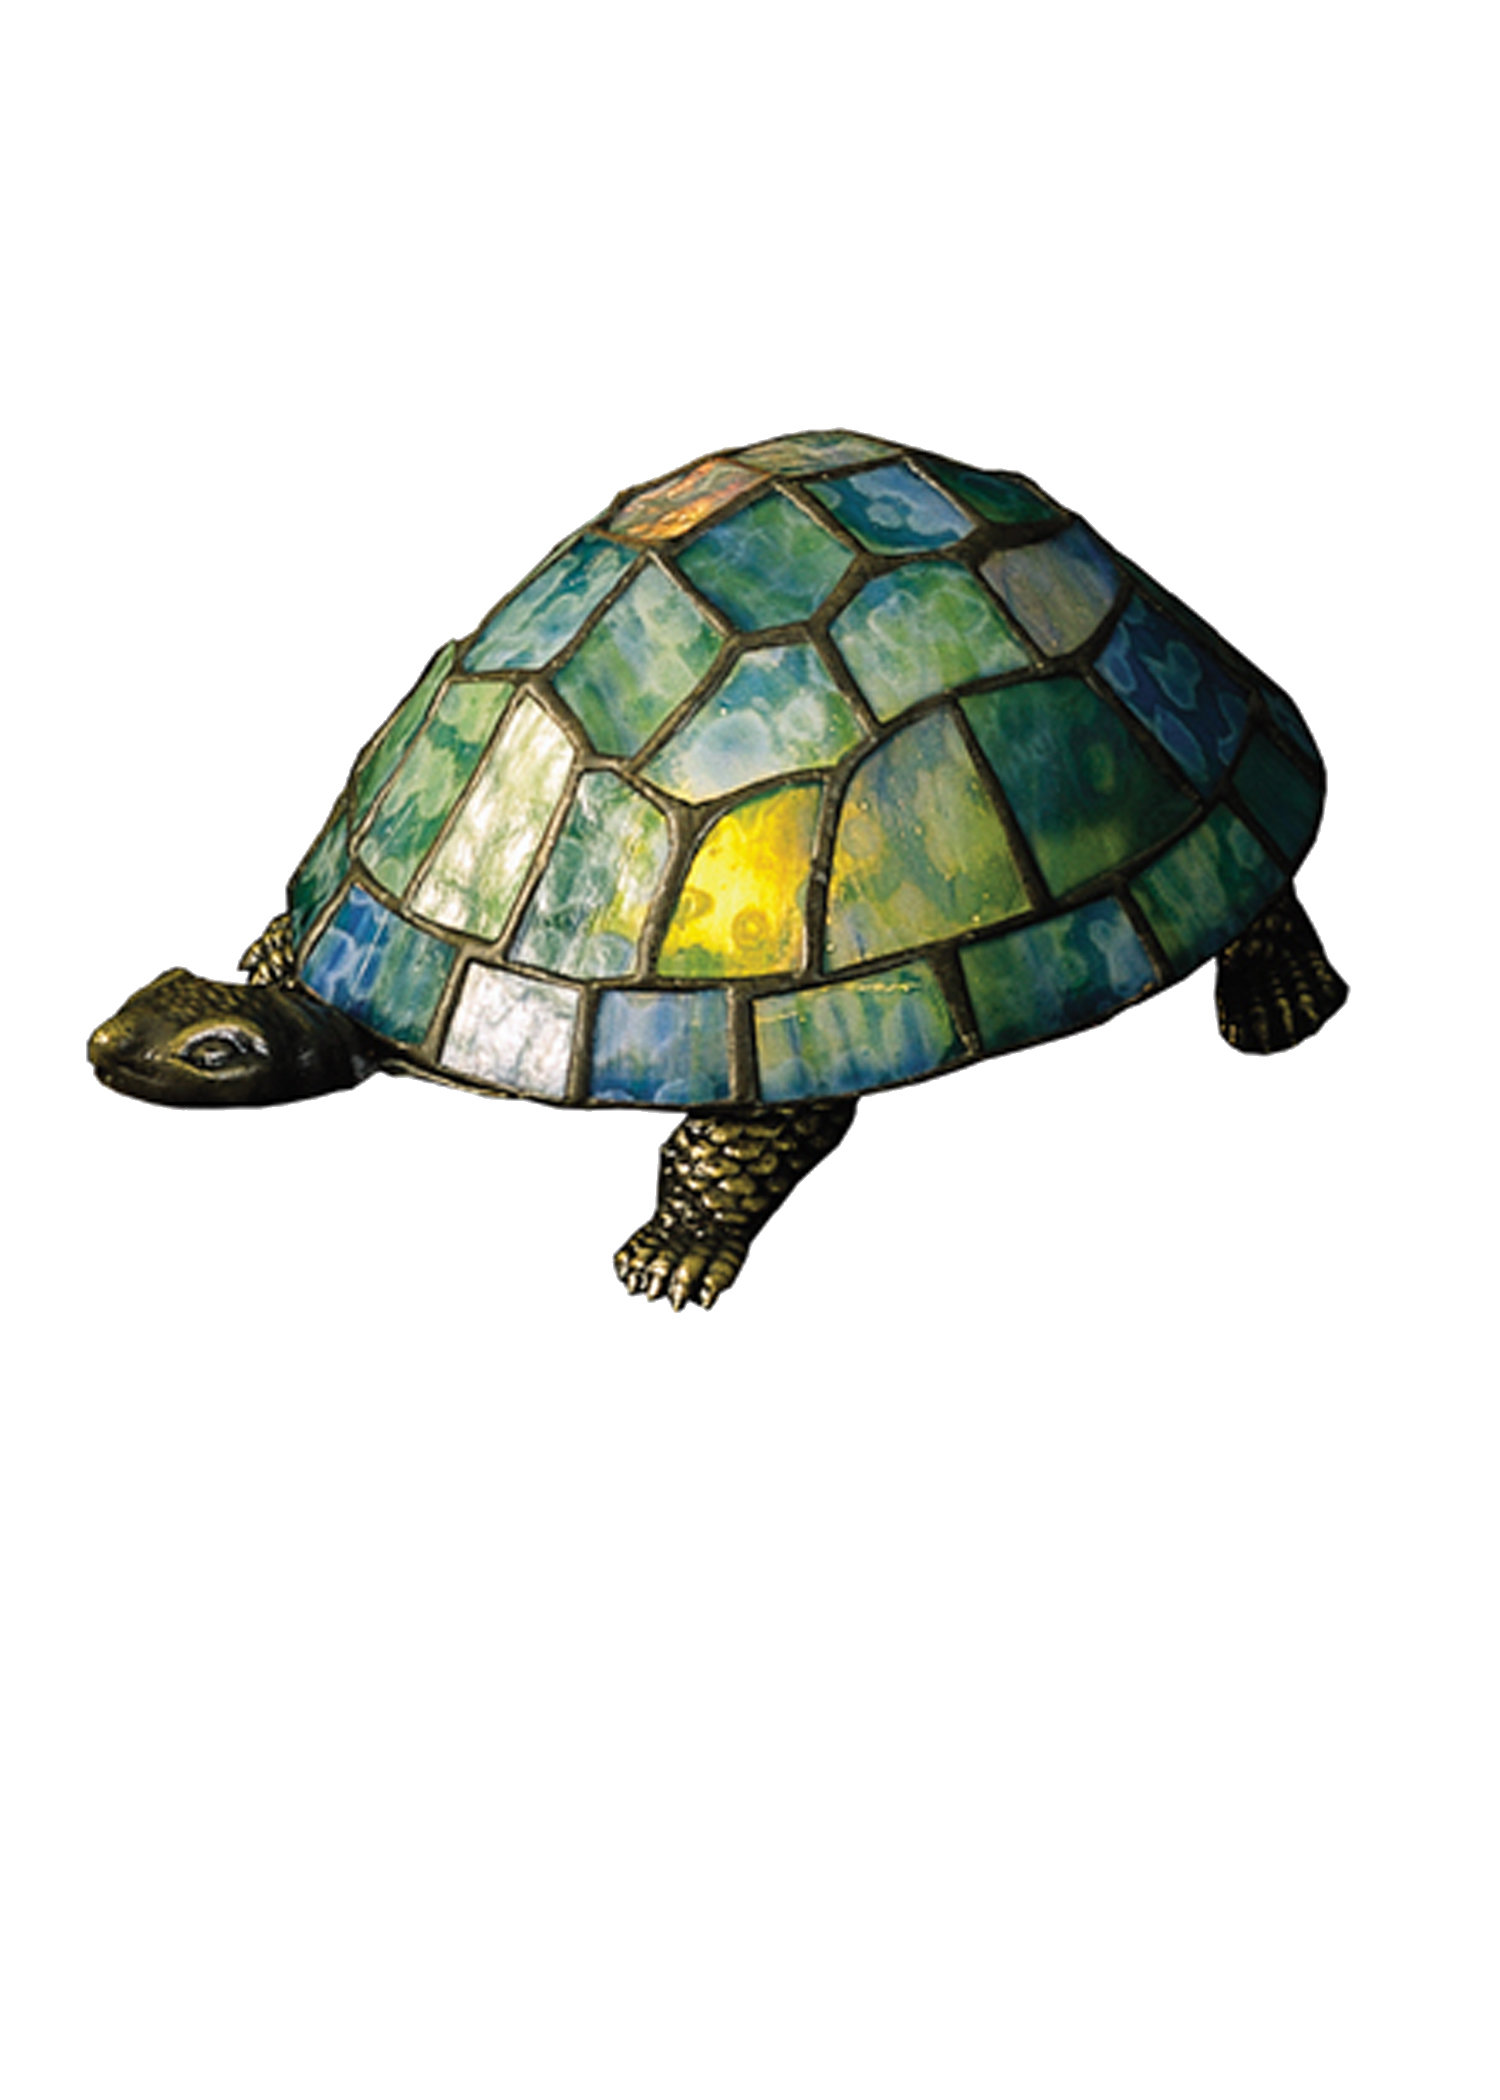 meyda tiffany turtle glass accent table lamp lamps patio side lewis wood chair set folding nesting tables person farm ikea small gold metal and sofa furniture for less narrow nest